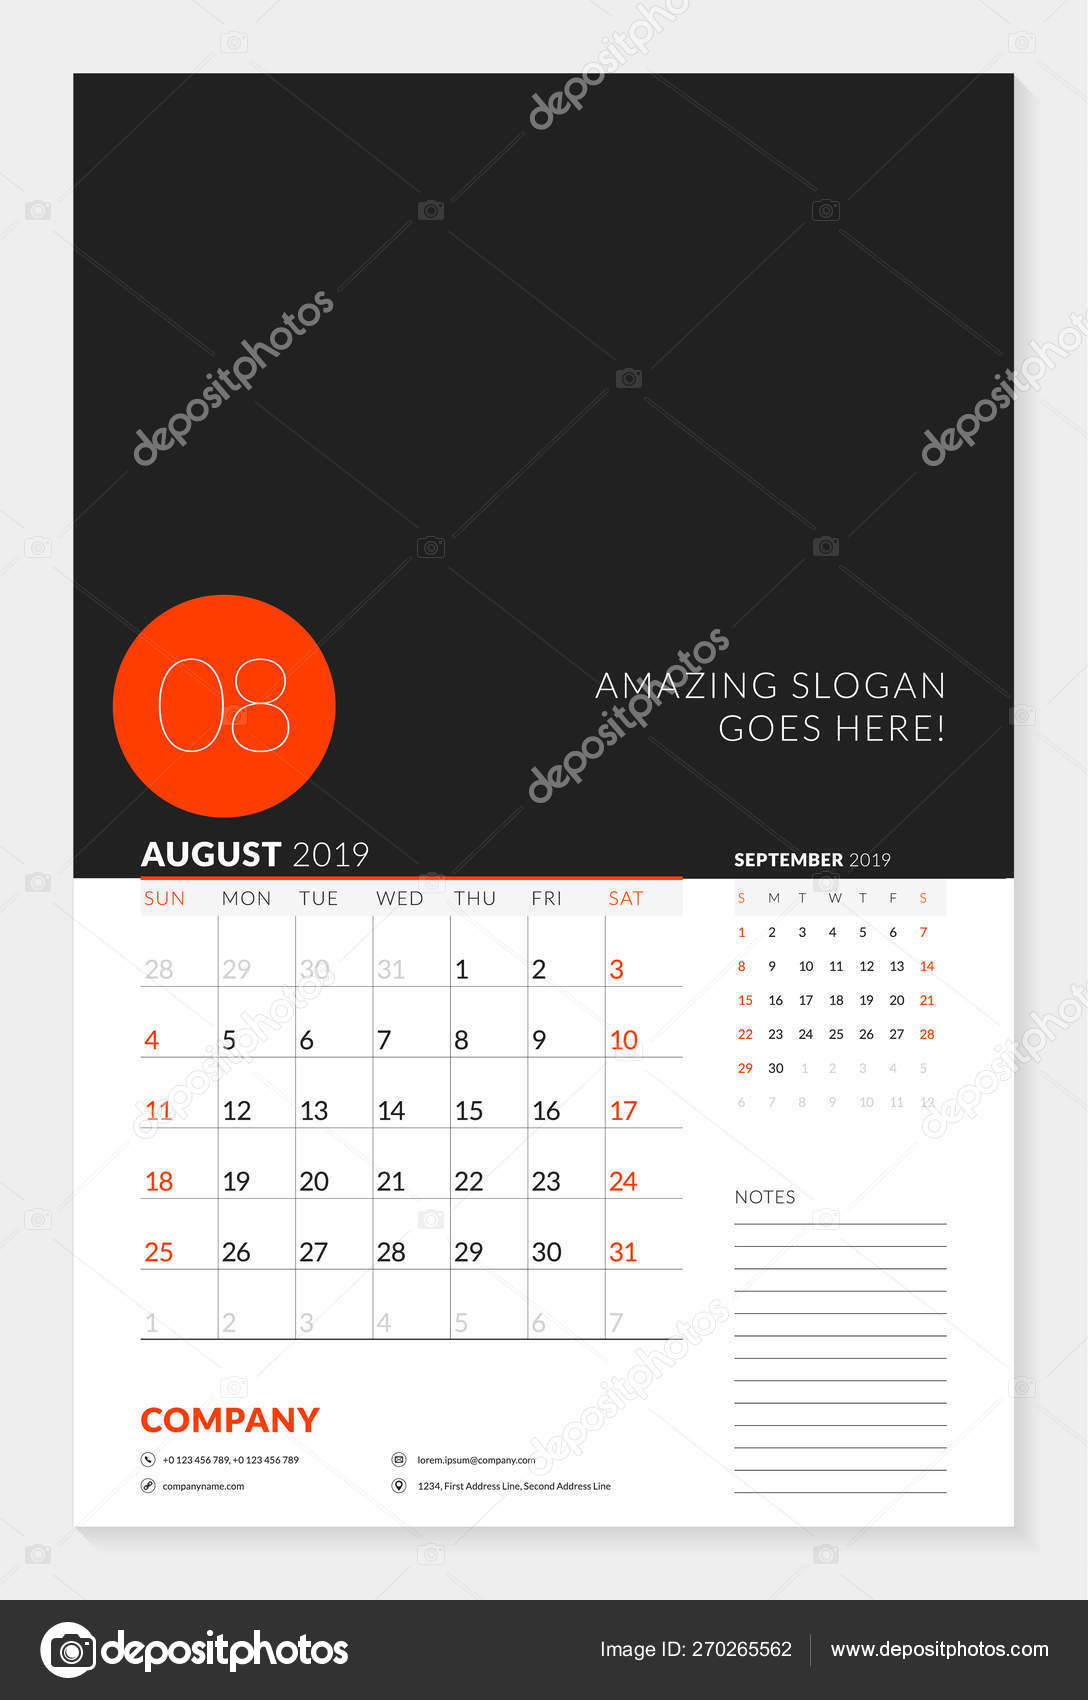 Wall Calendar Planner Template For 2019 Year. 2 Months On The Page for 2 Week Schedule Template Mon- Sunday